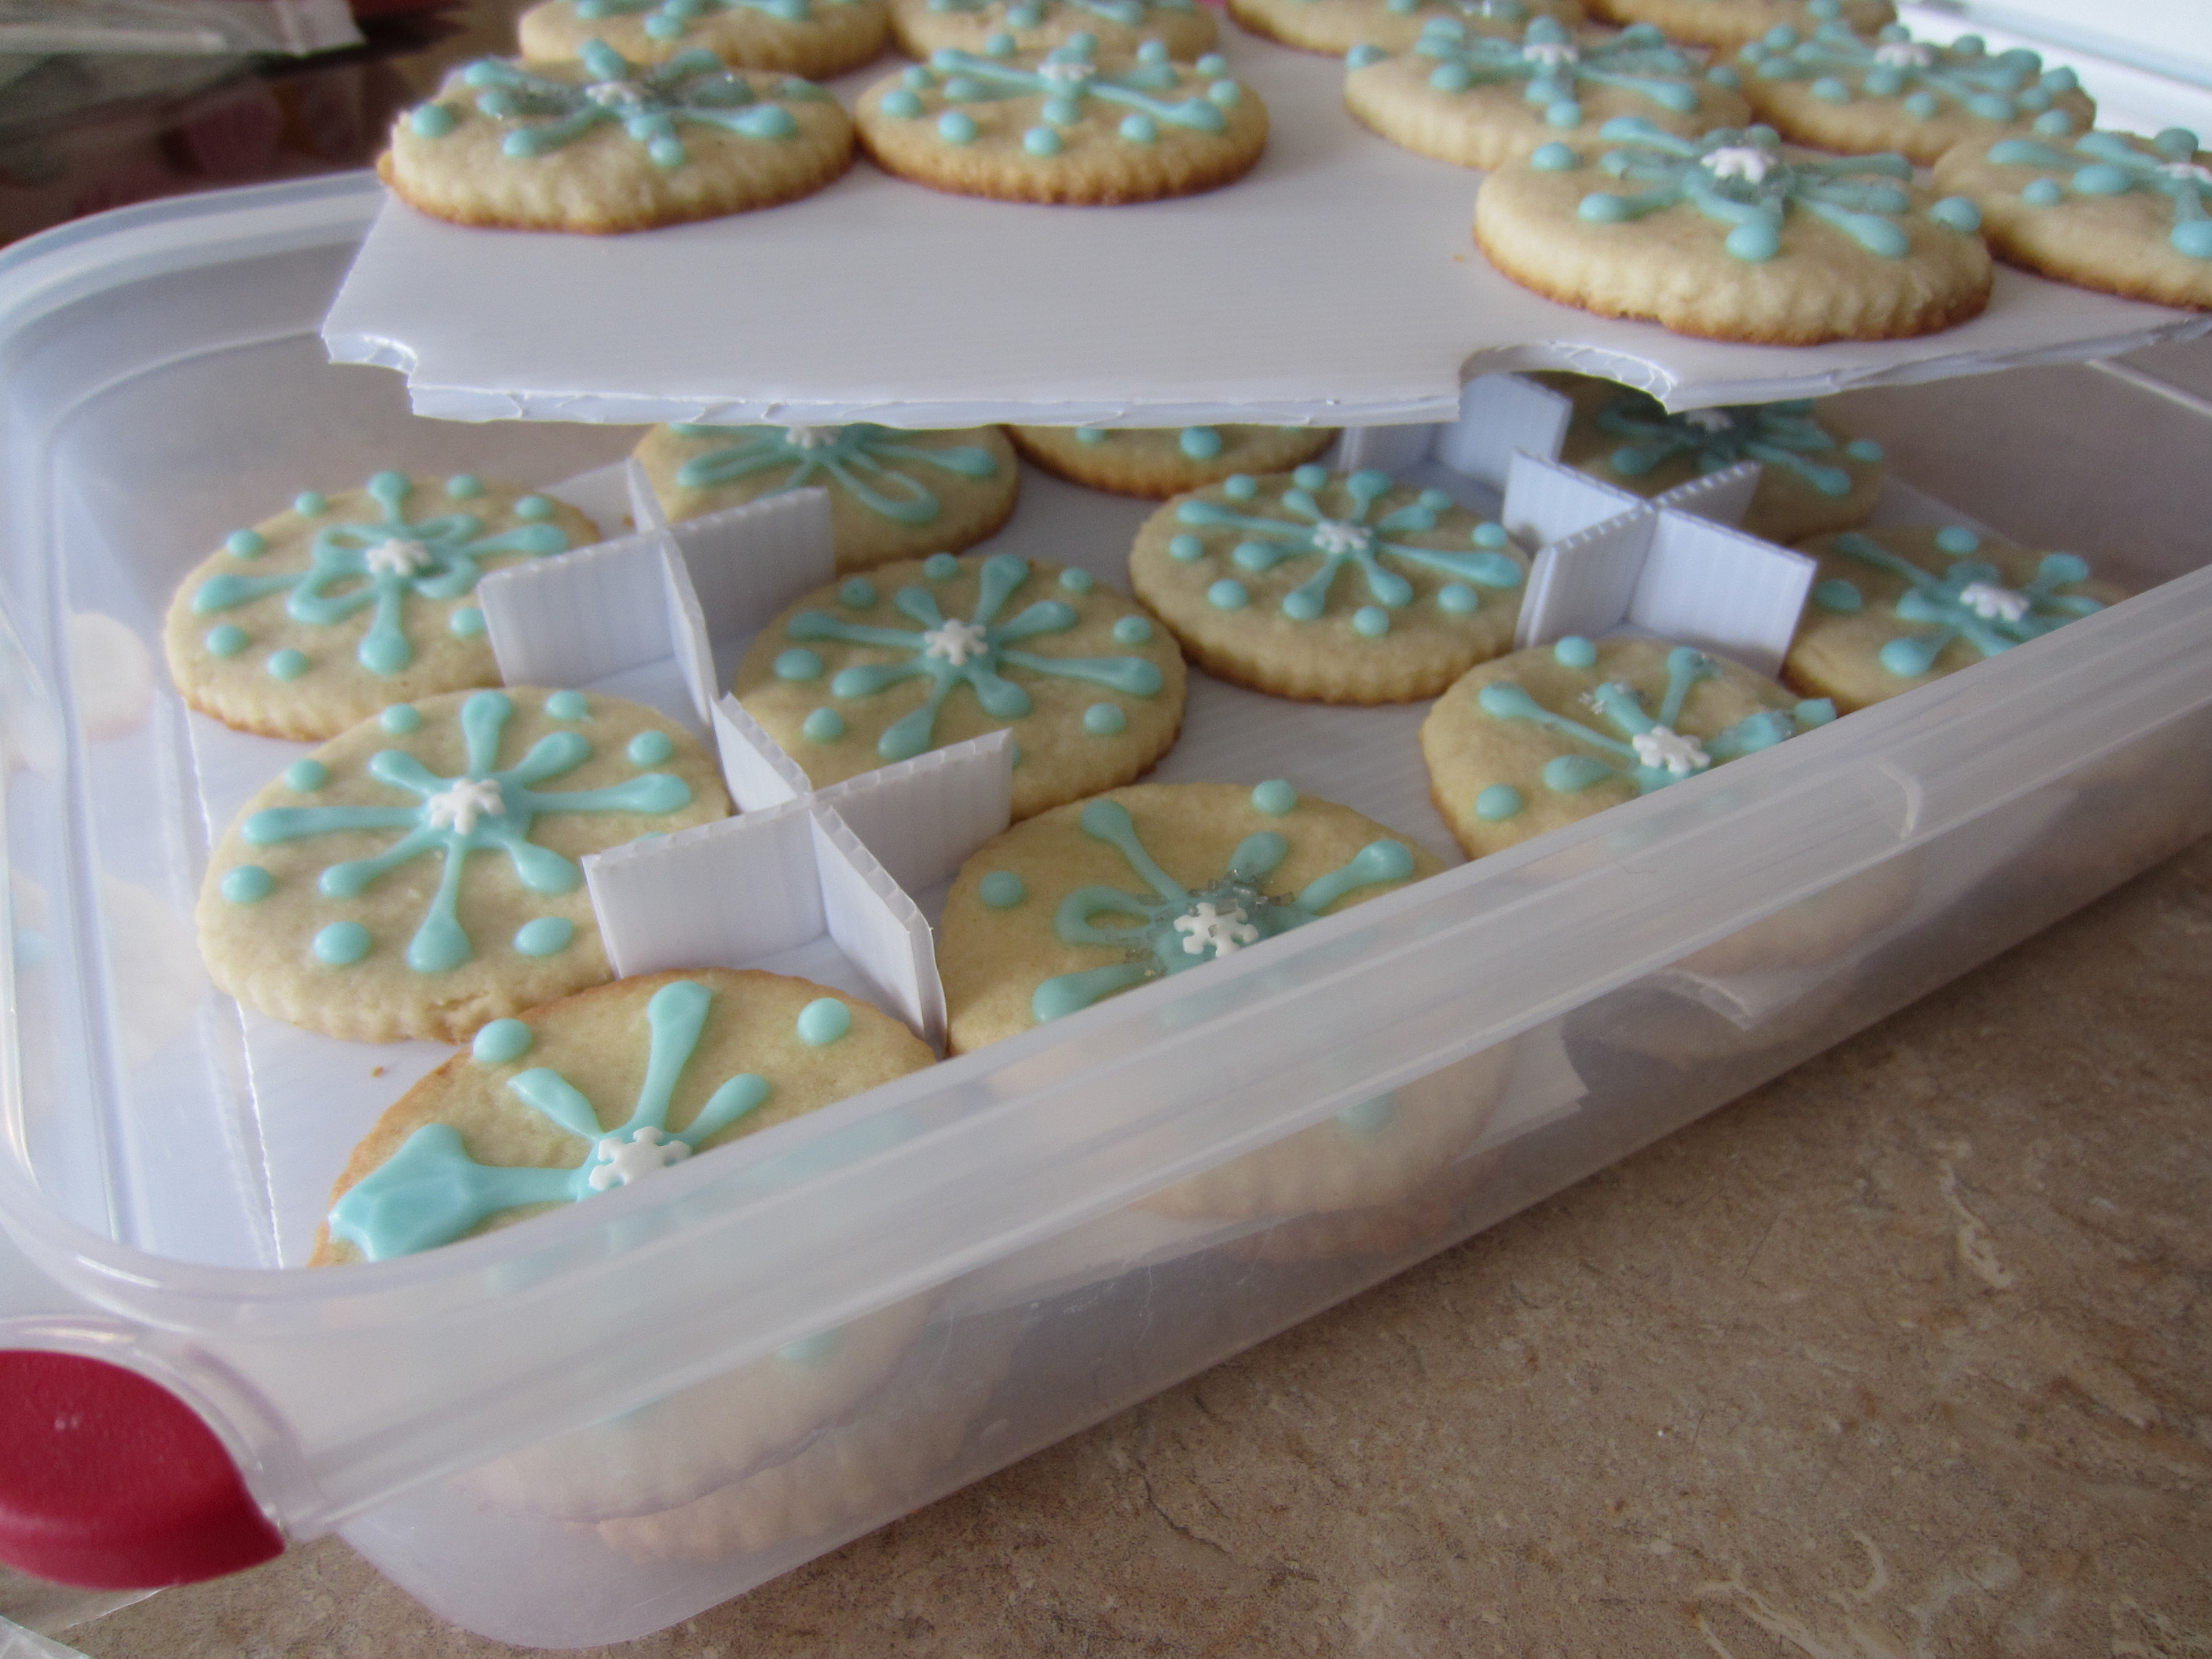 Decorative Cookie Containers Frozen Birthday Snowflake Sugar Cookies Partykitchen